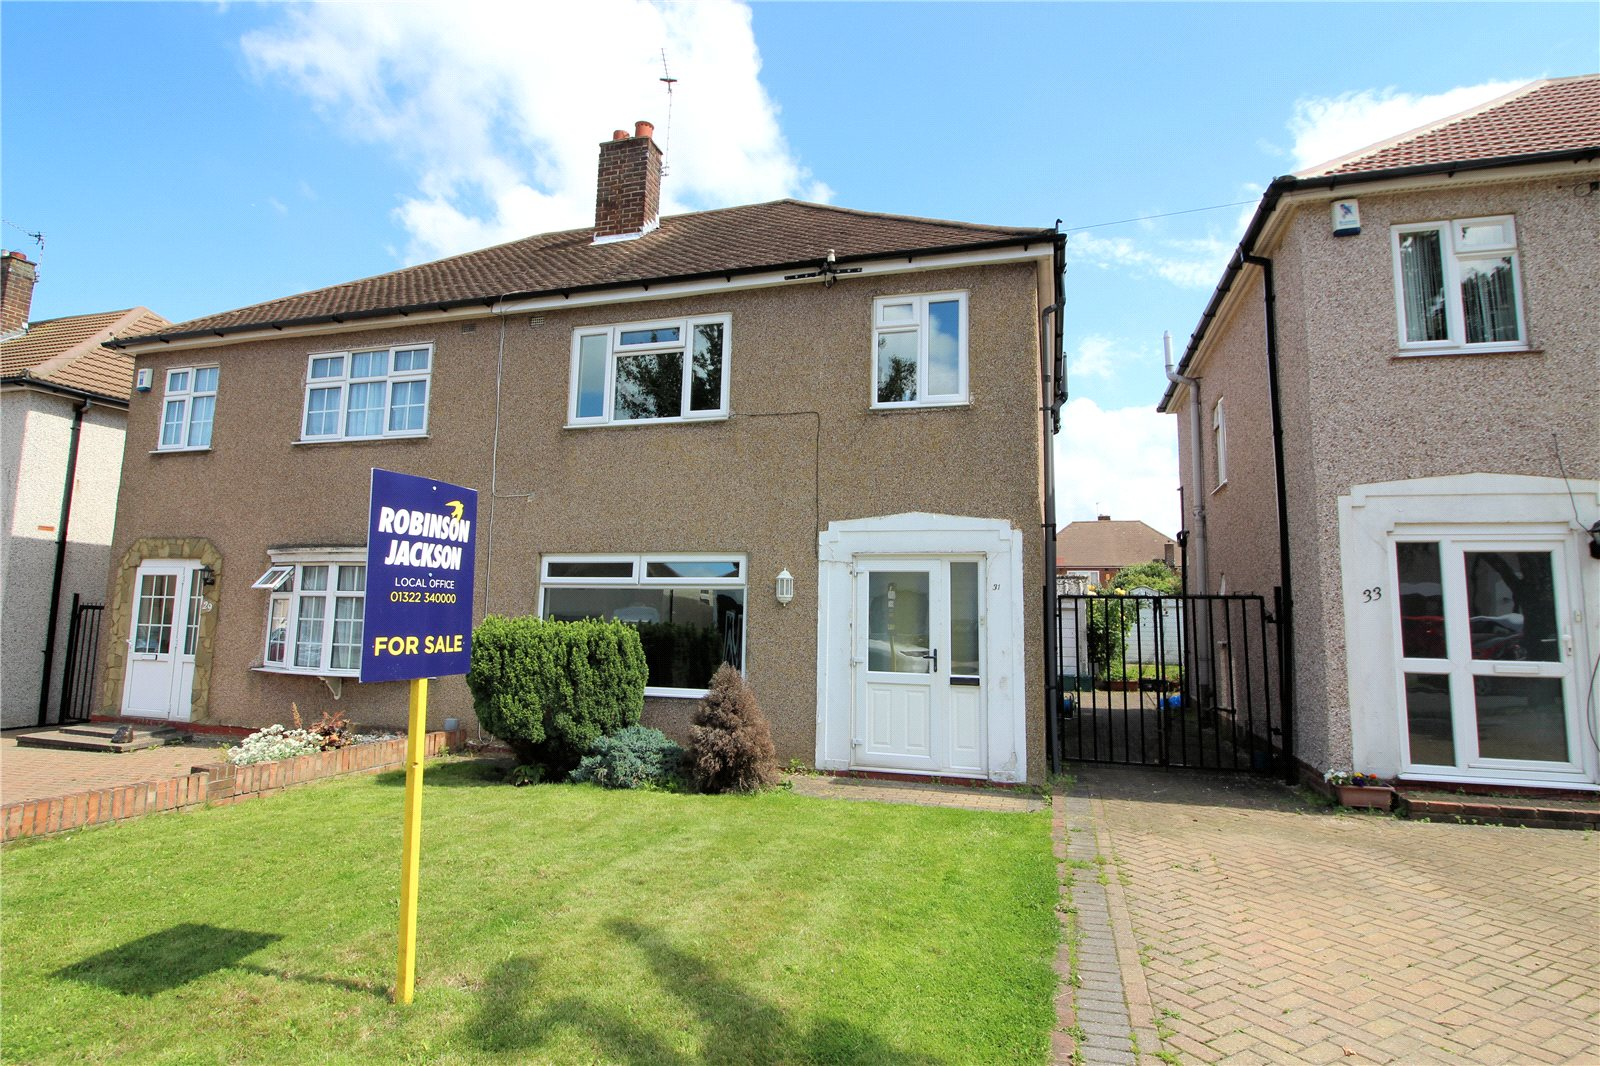 Eastry Road, Erith, Kent, DA8